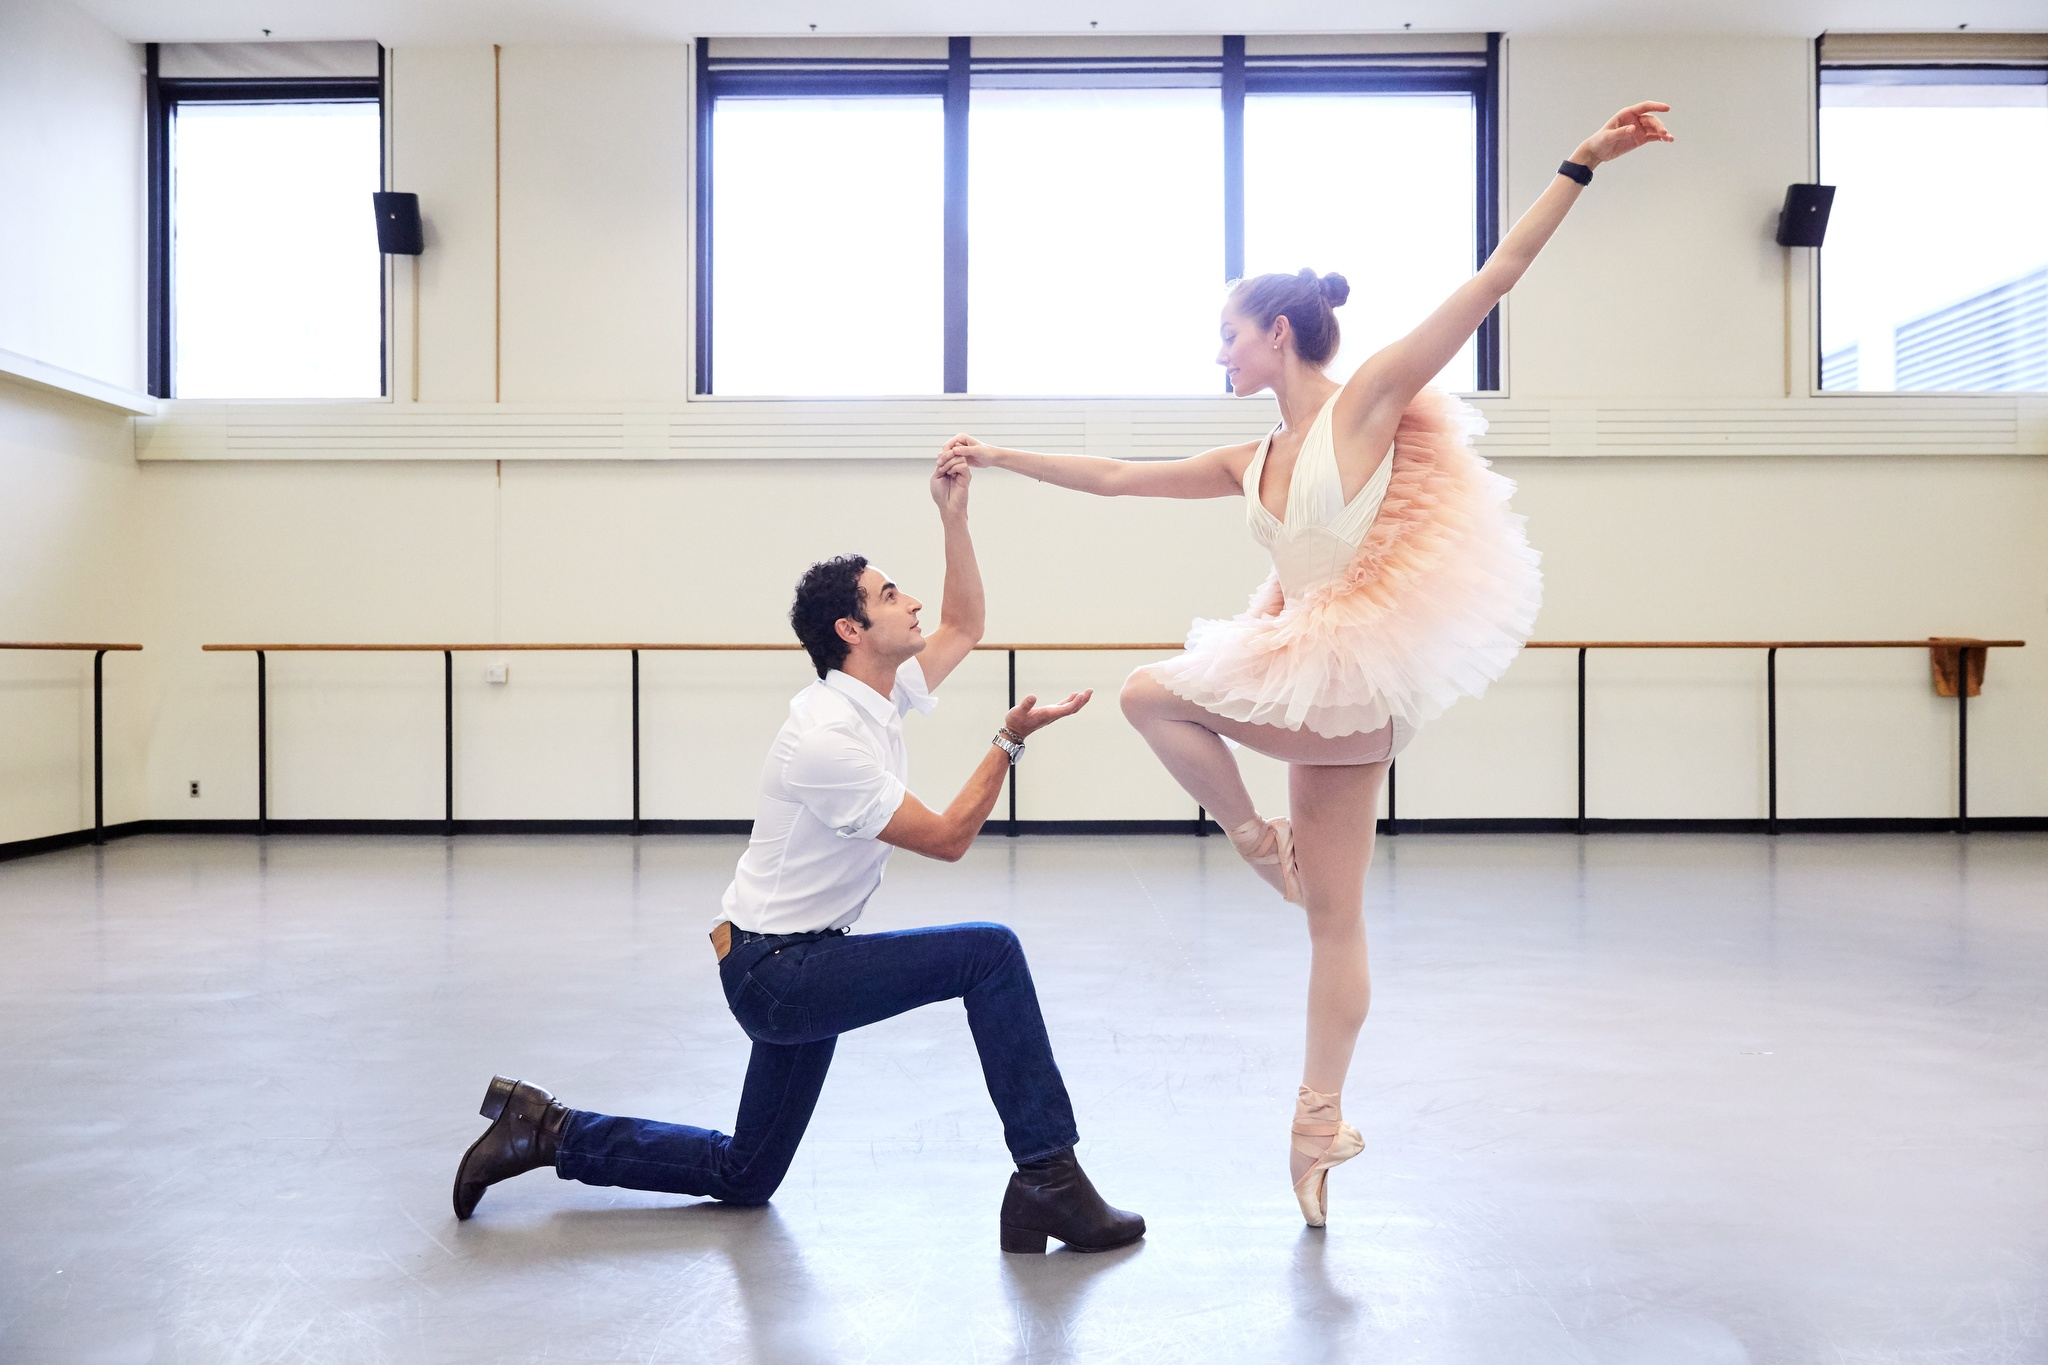 Zac Posen is designing costumes for the New York City Ballet. Anna Sui is also creating designs.